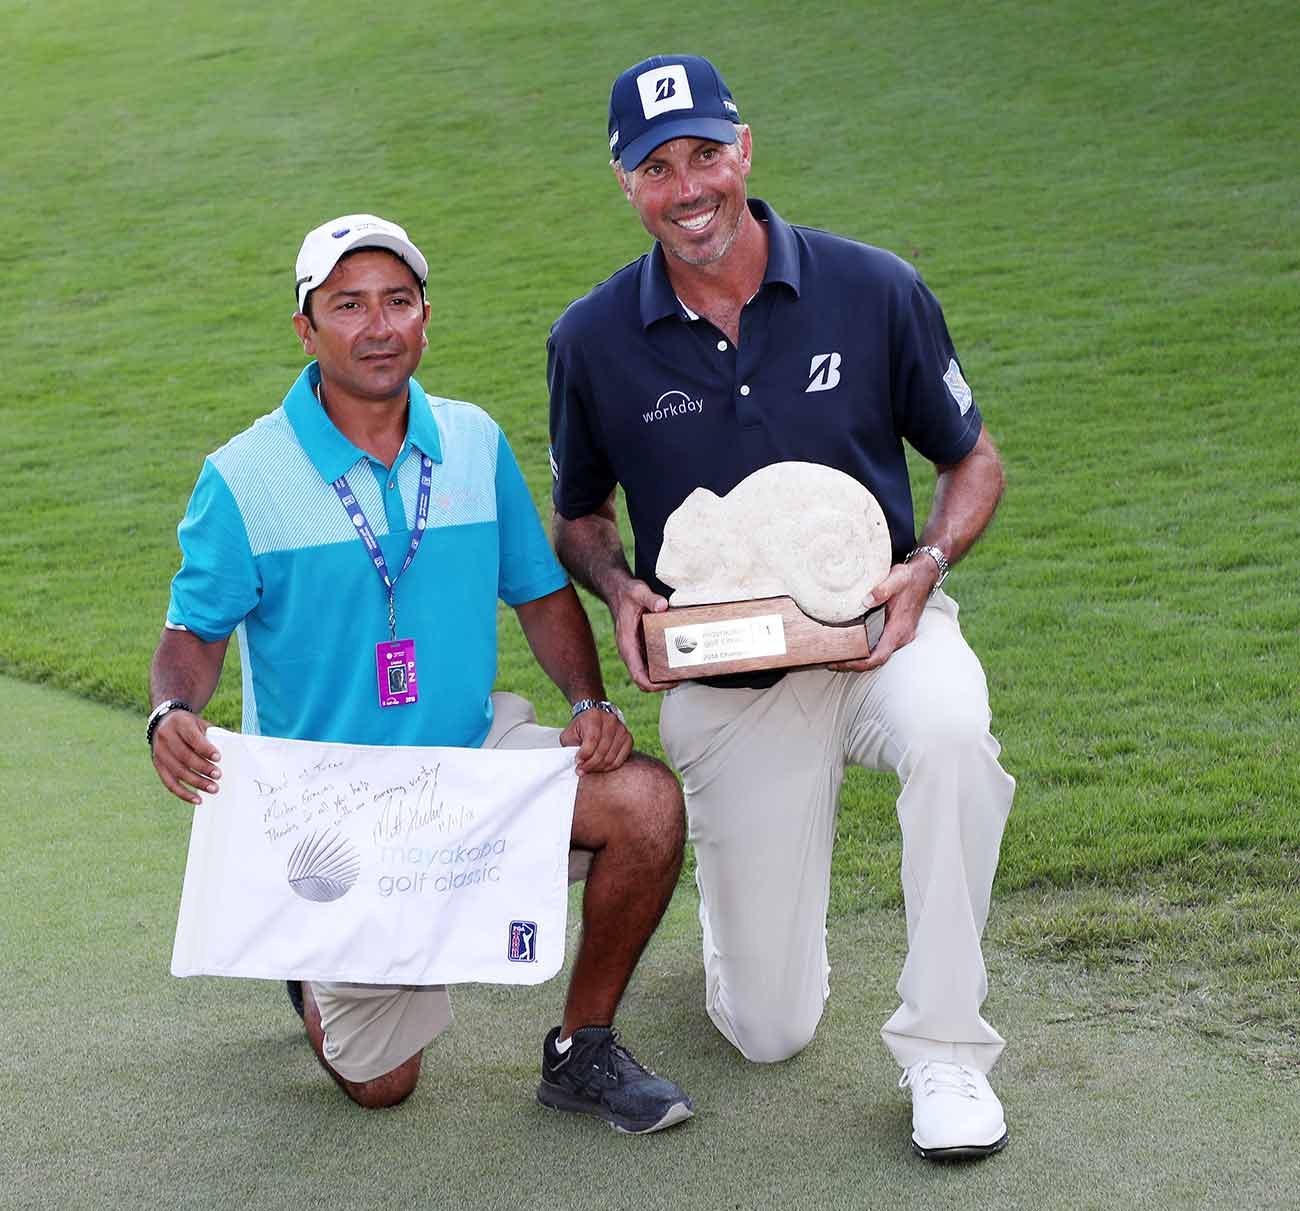 Matt Kuchar and El Tucan pose for a photo after their win. El Tucan said he cried when he held the trophy.